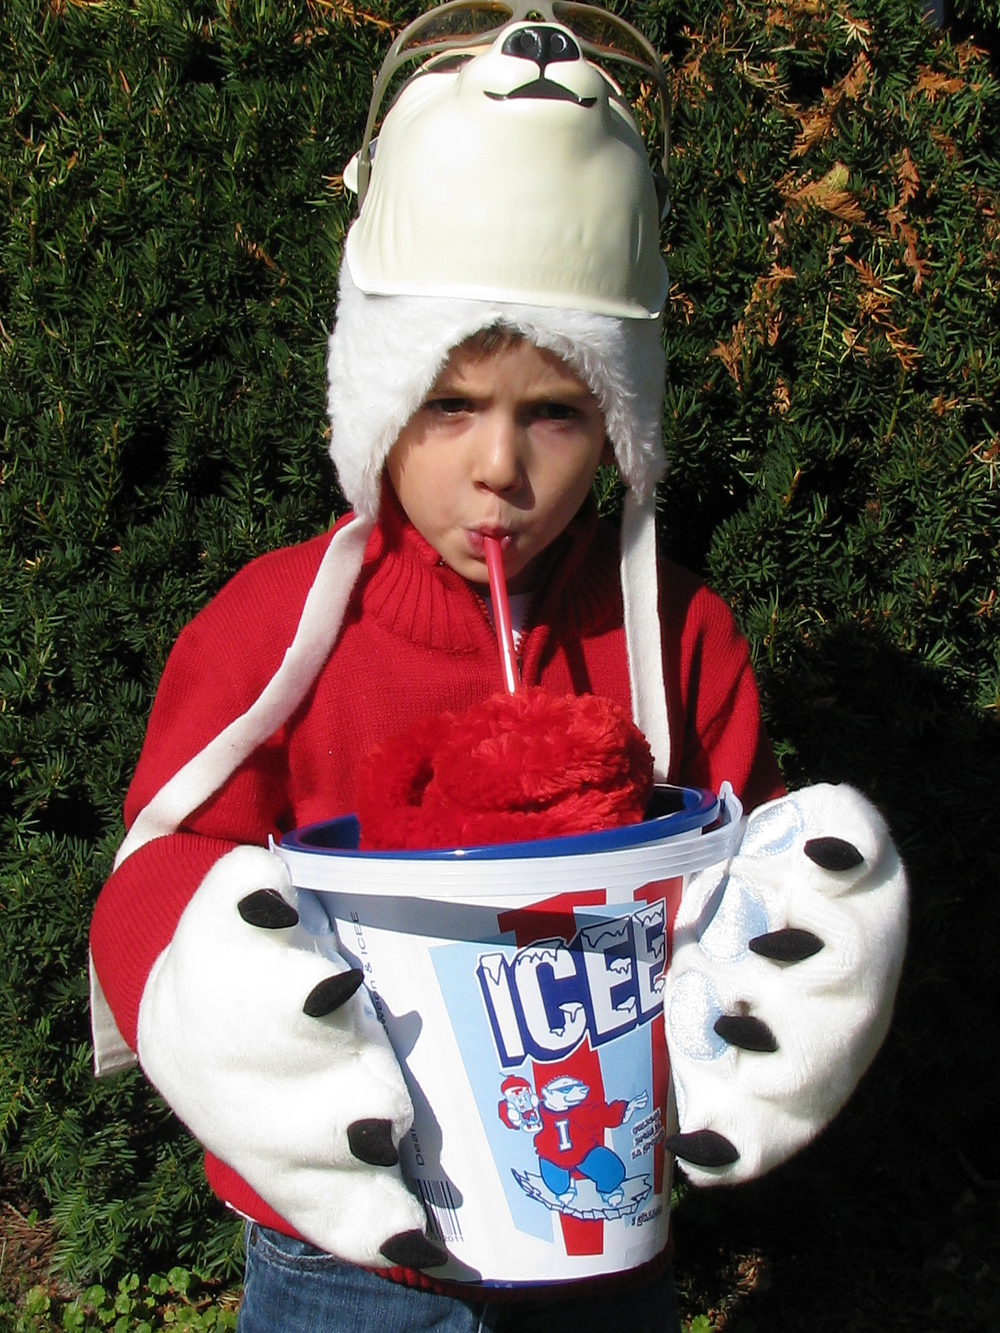 Icee with is custom Trick or Treat bag